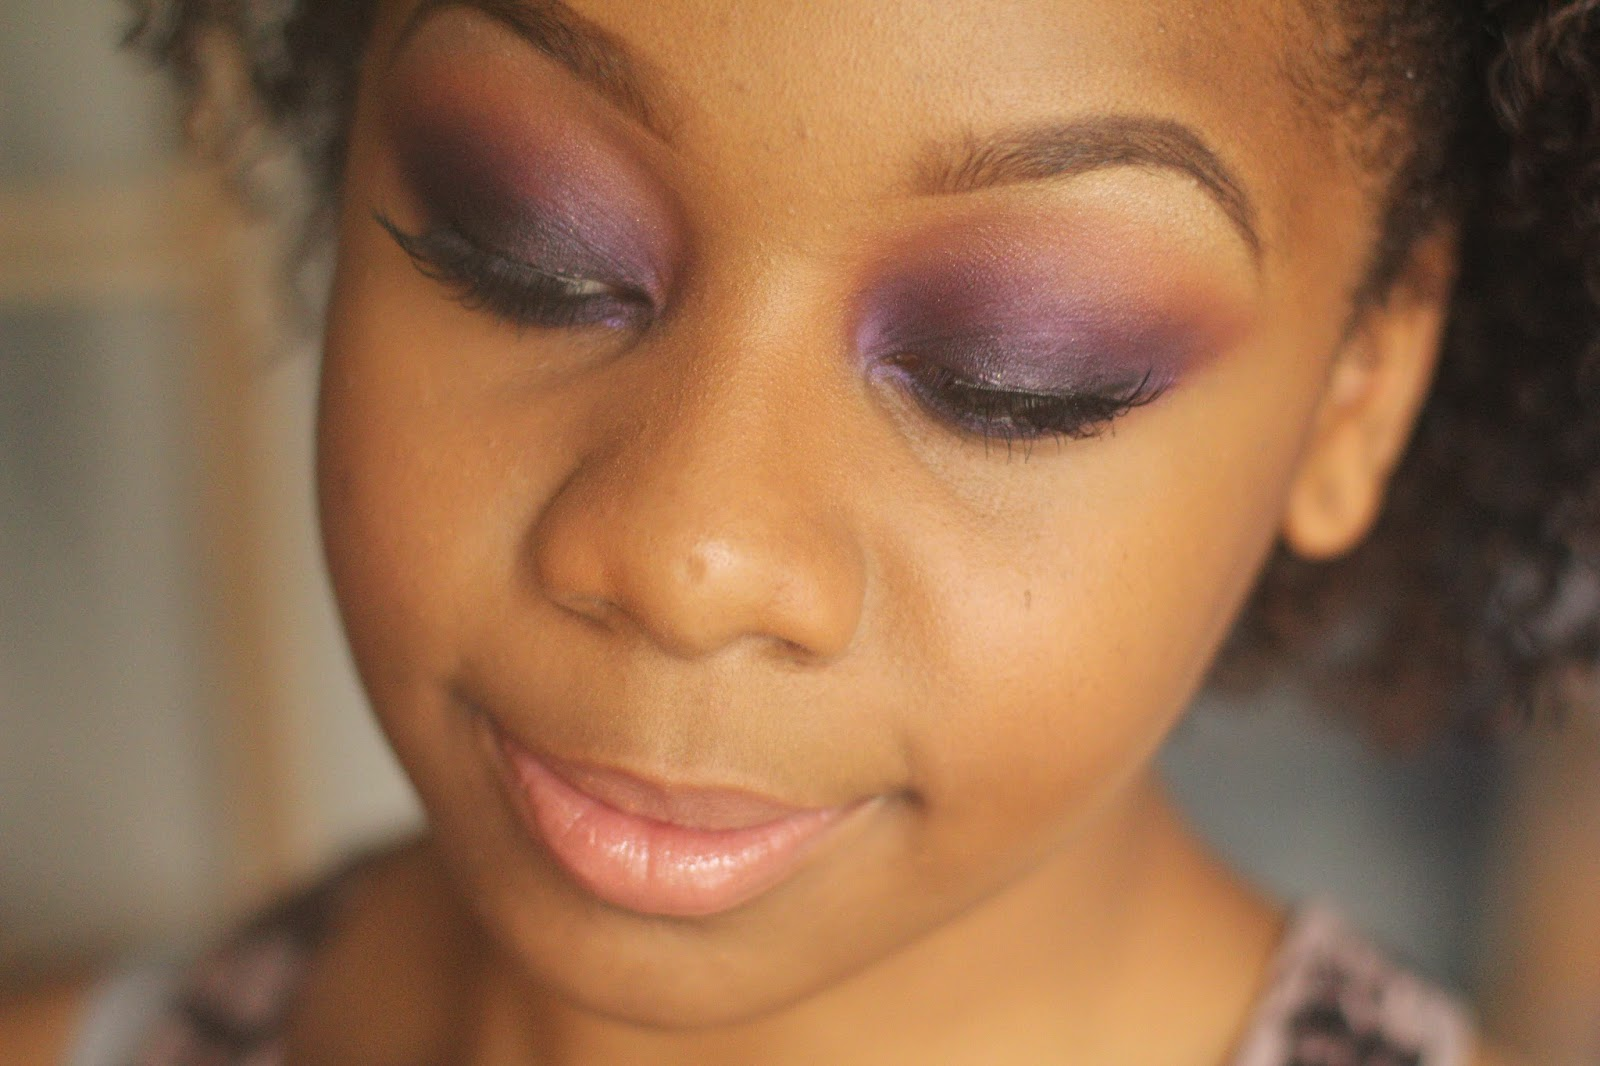 Smoked out purple eye make up look 2